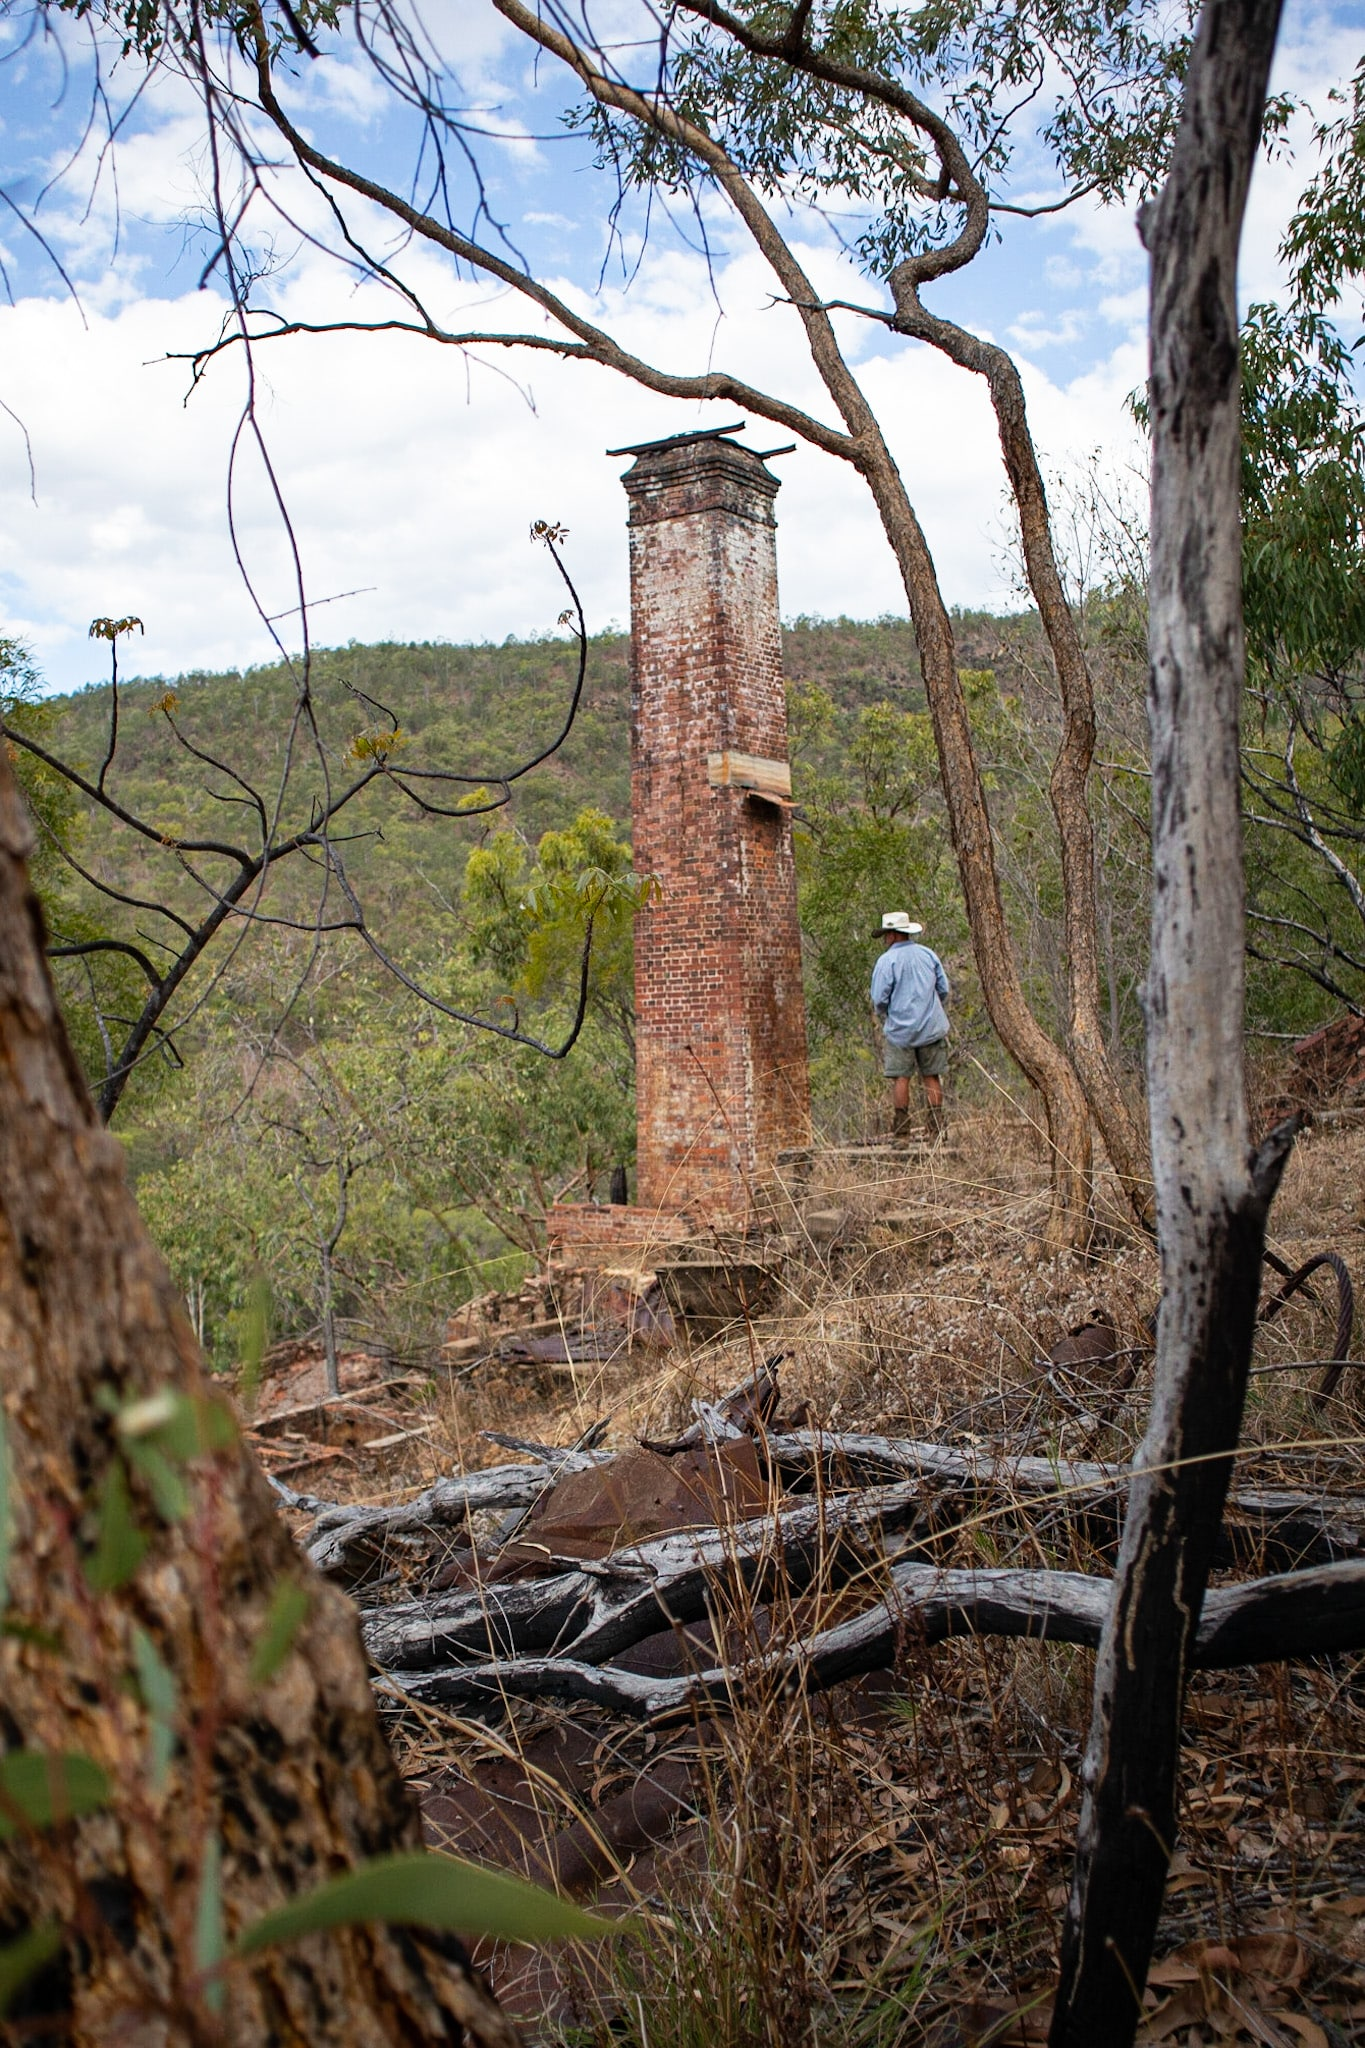 Man in cowboy attire standing in front of an old abandoned chimney in a mining town in the Australian bush